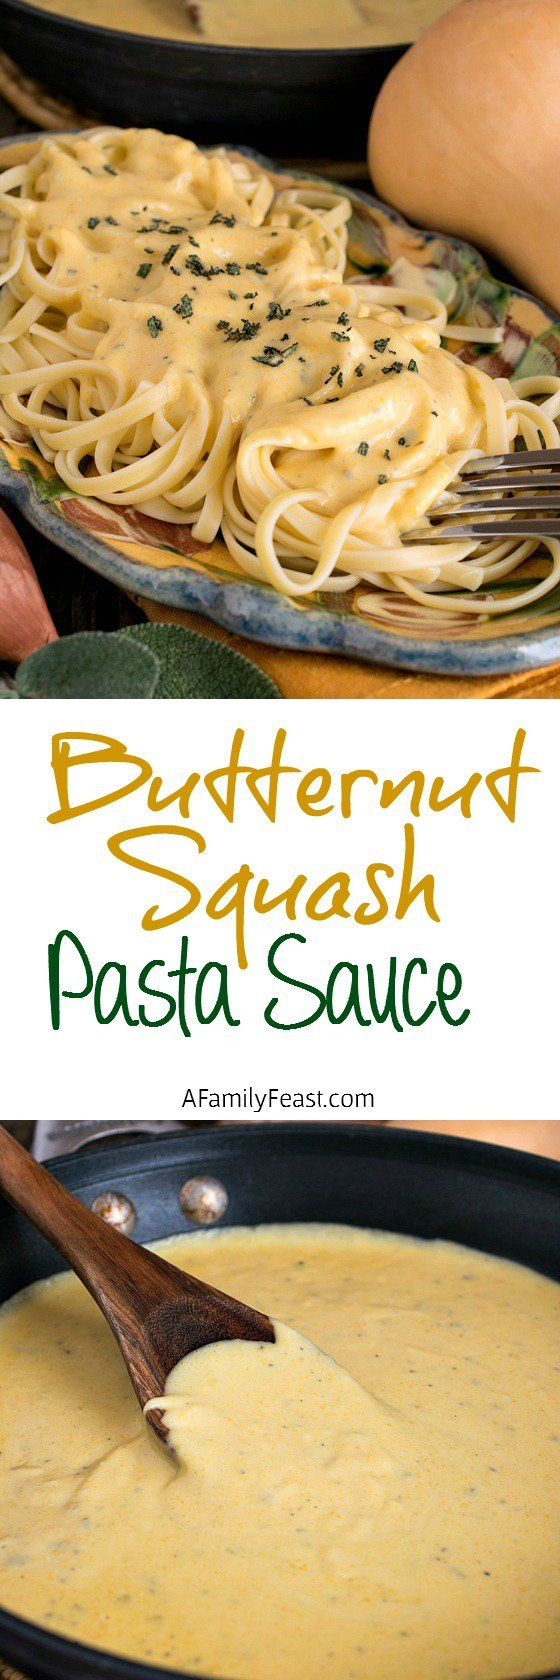 Make several batches of this amazing sauce & then freeze some...then on busy weeknights, just boil some pasta & you have a quick meal!